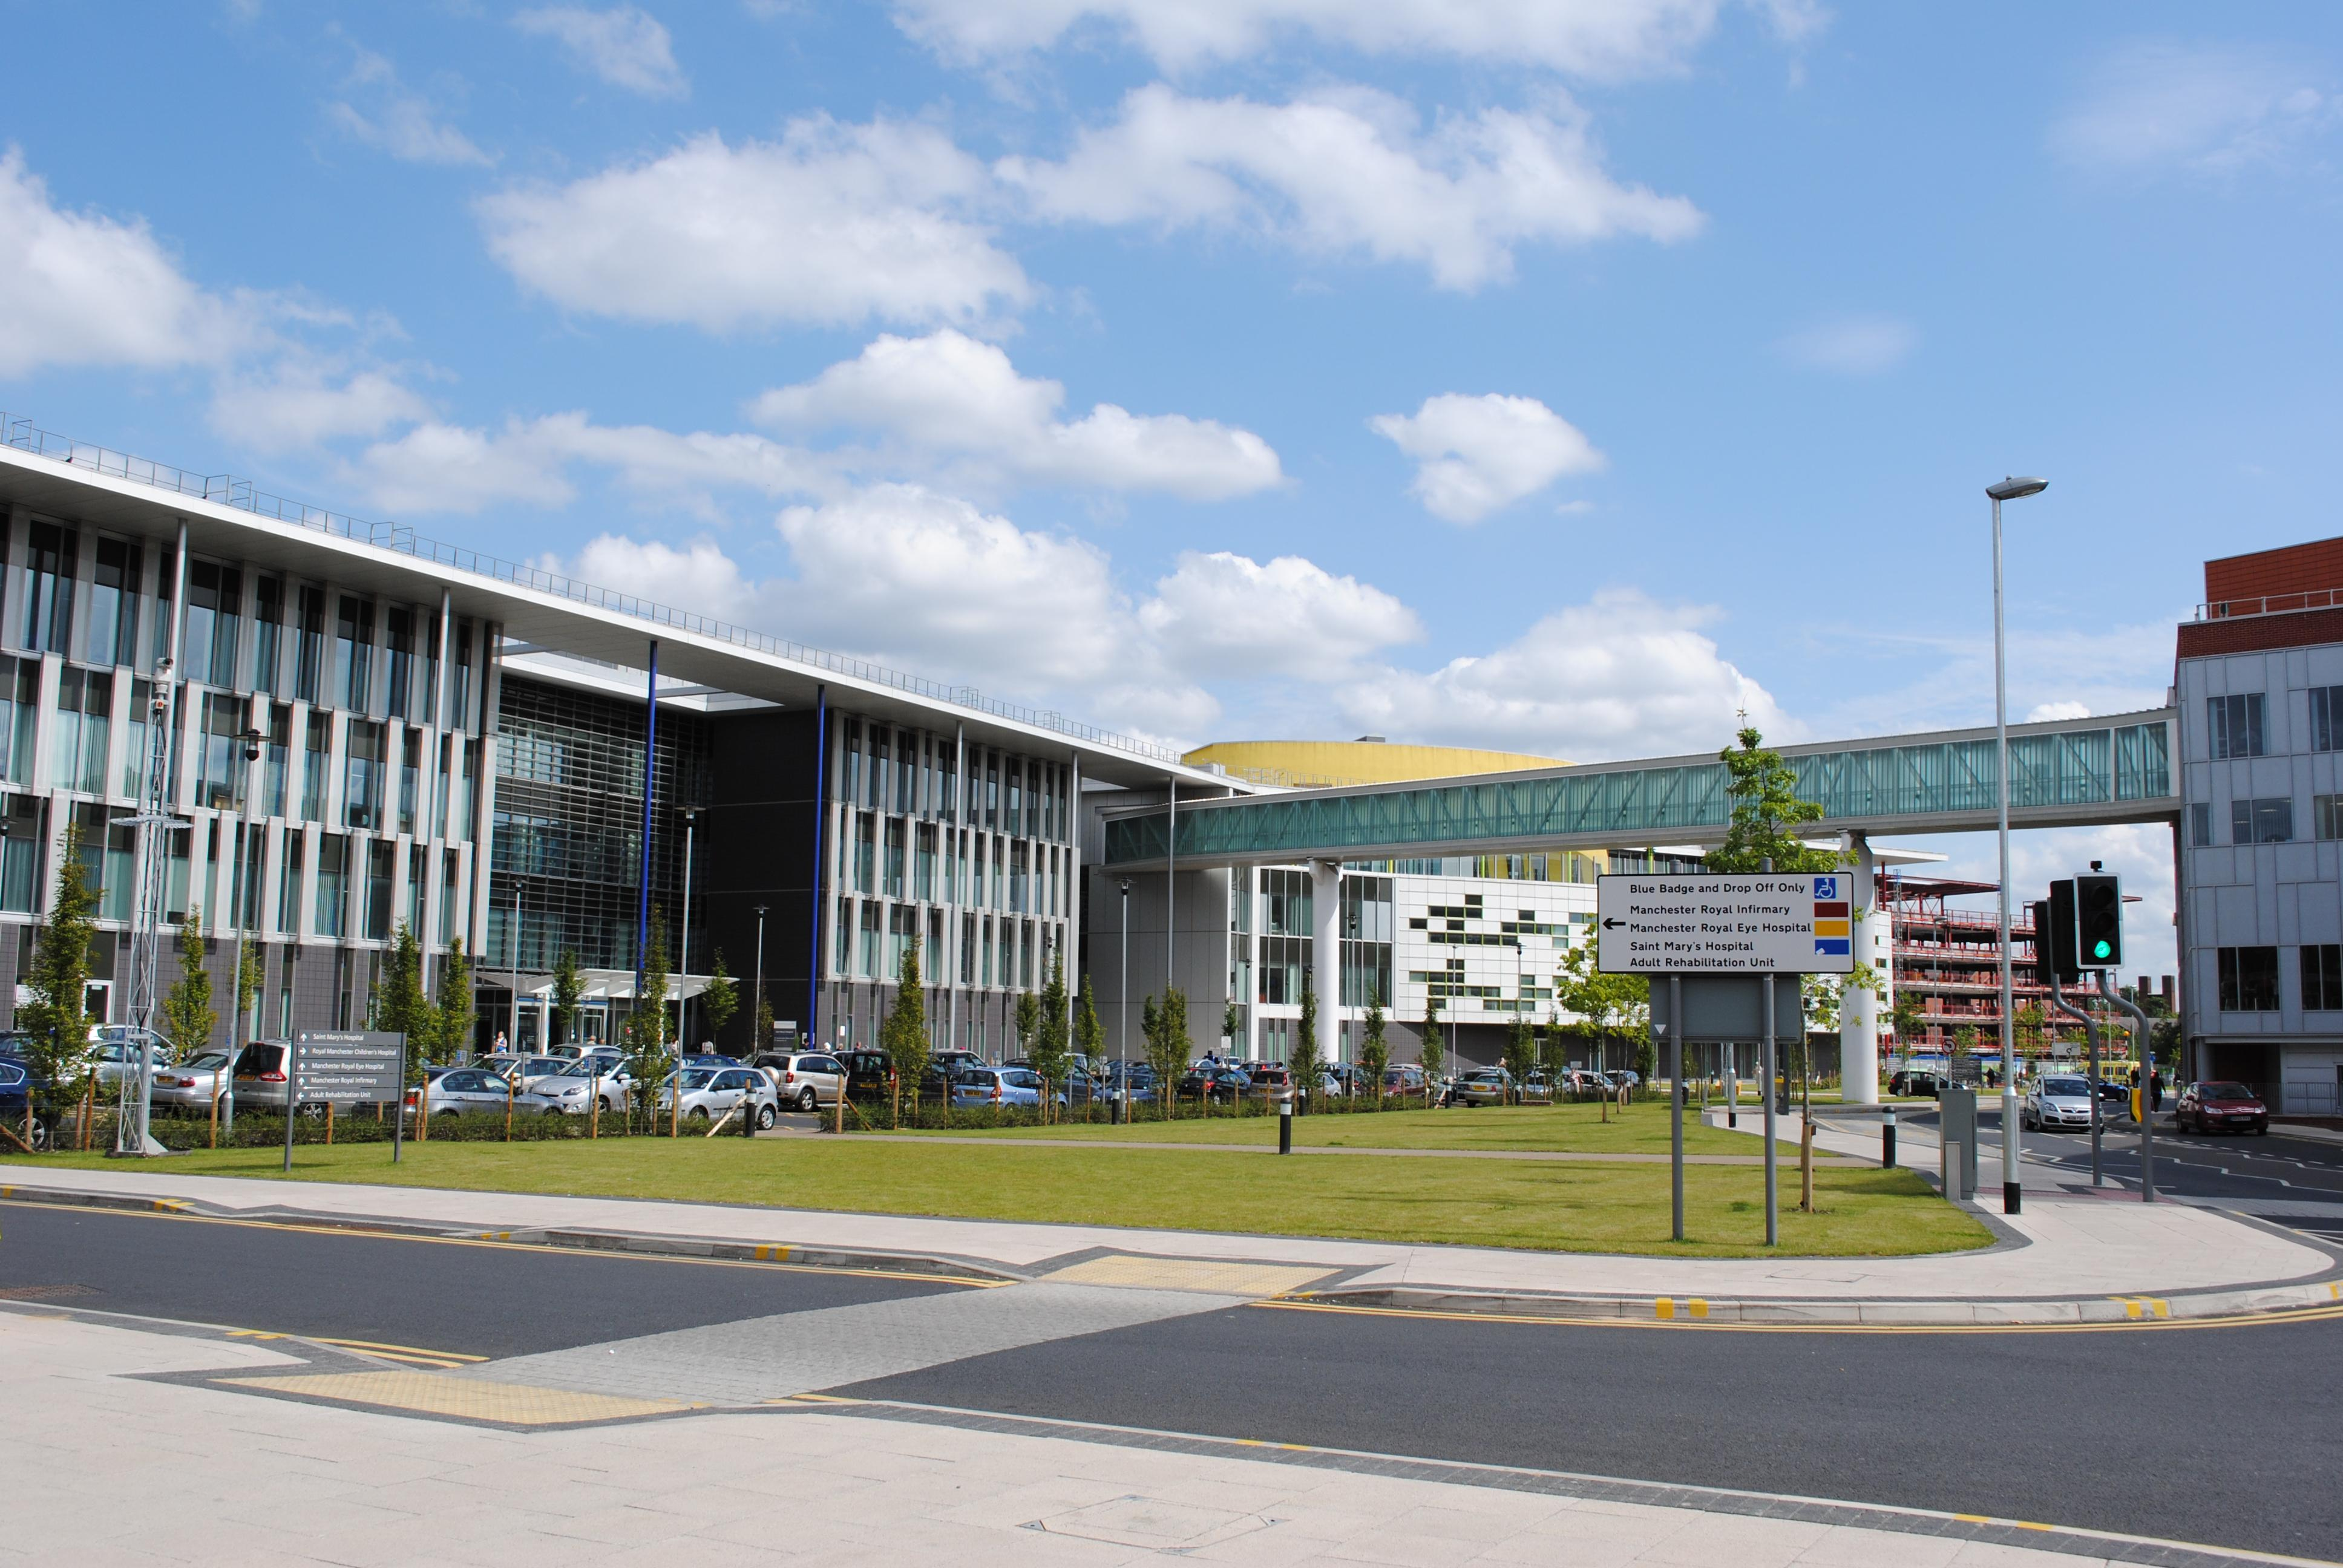 Partnership between Manchester University NHS Foundation Trust and Siemens Healthineers set to transform care delivery in Greater Manchester